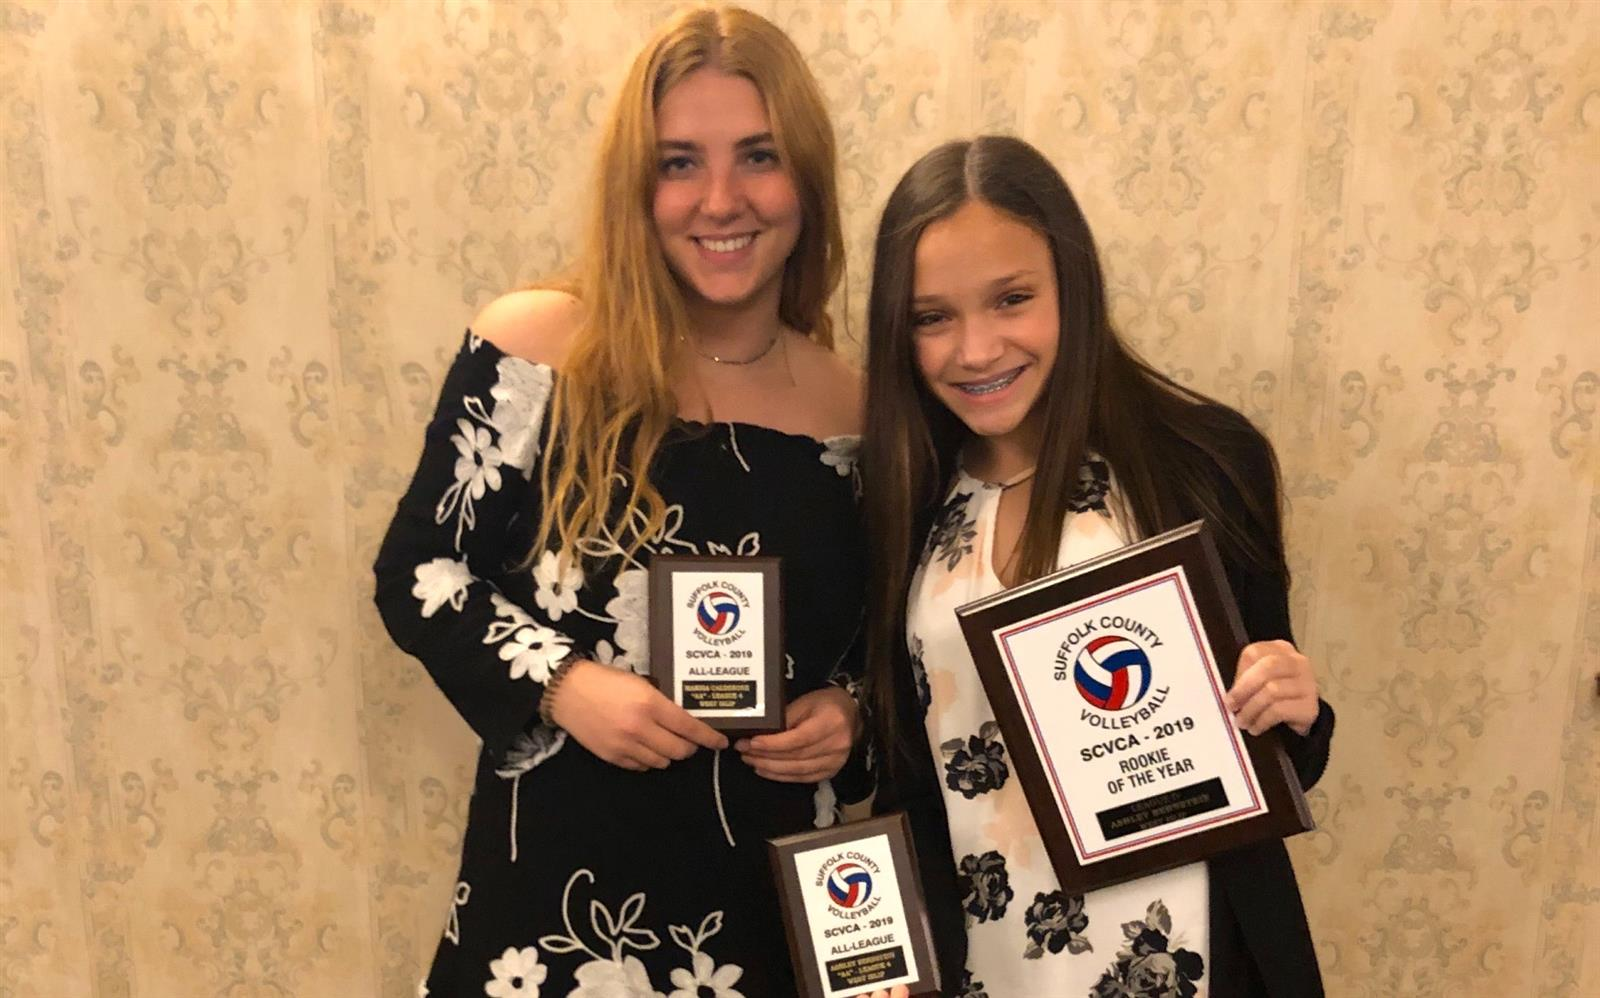 Bernstein and Calderone Receive Volleyball Honors